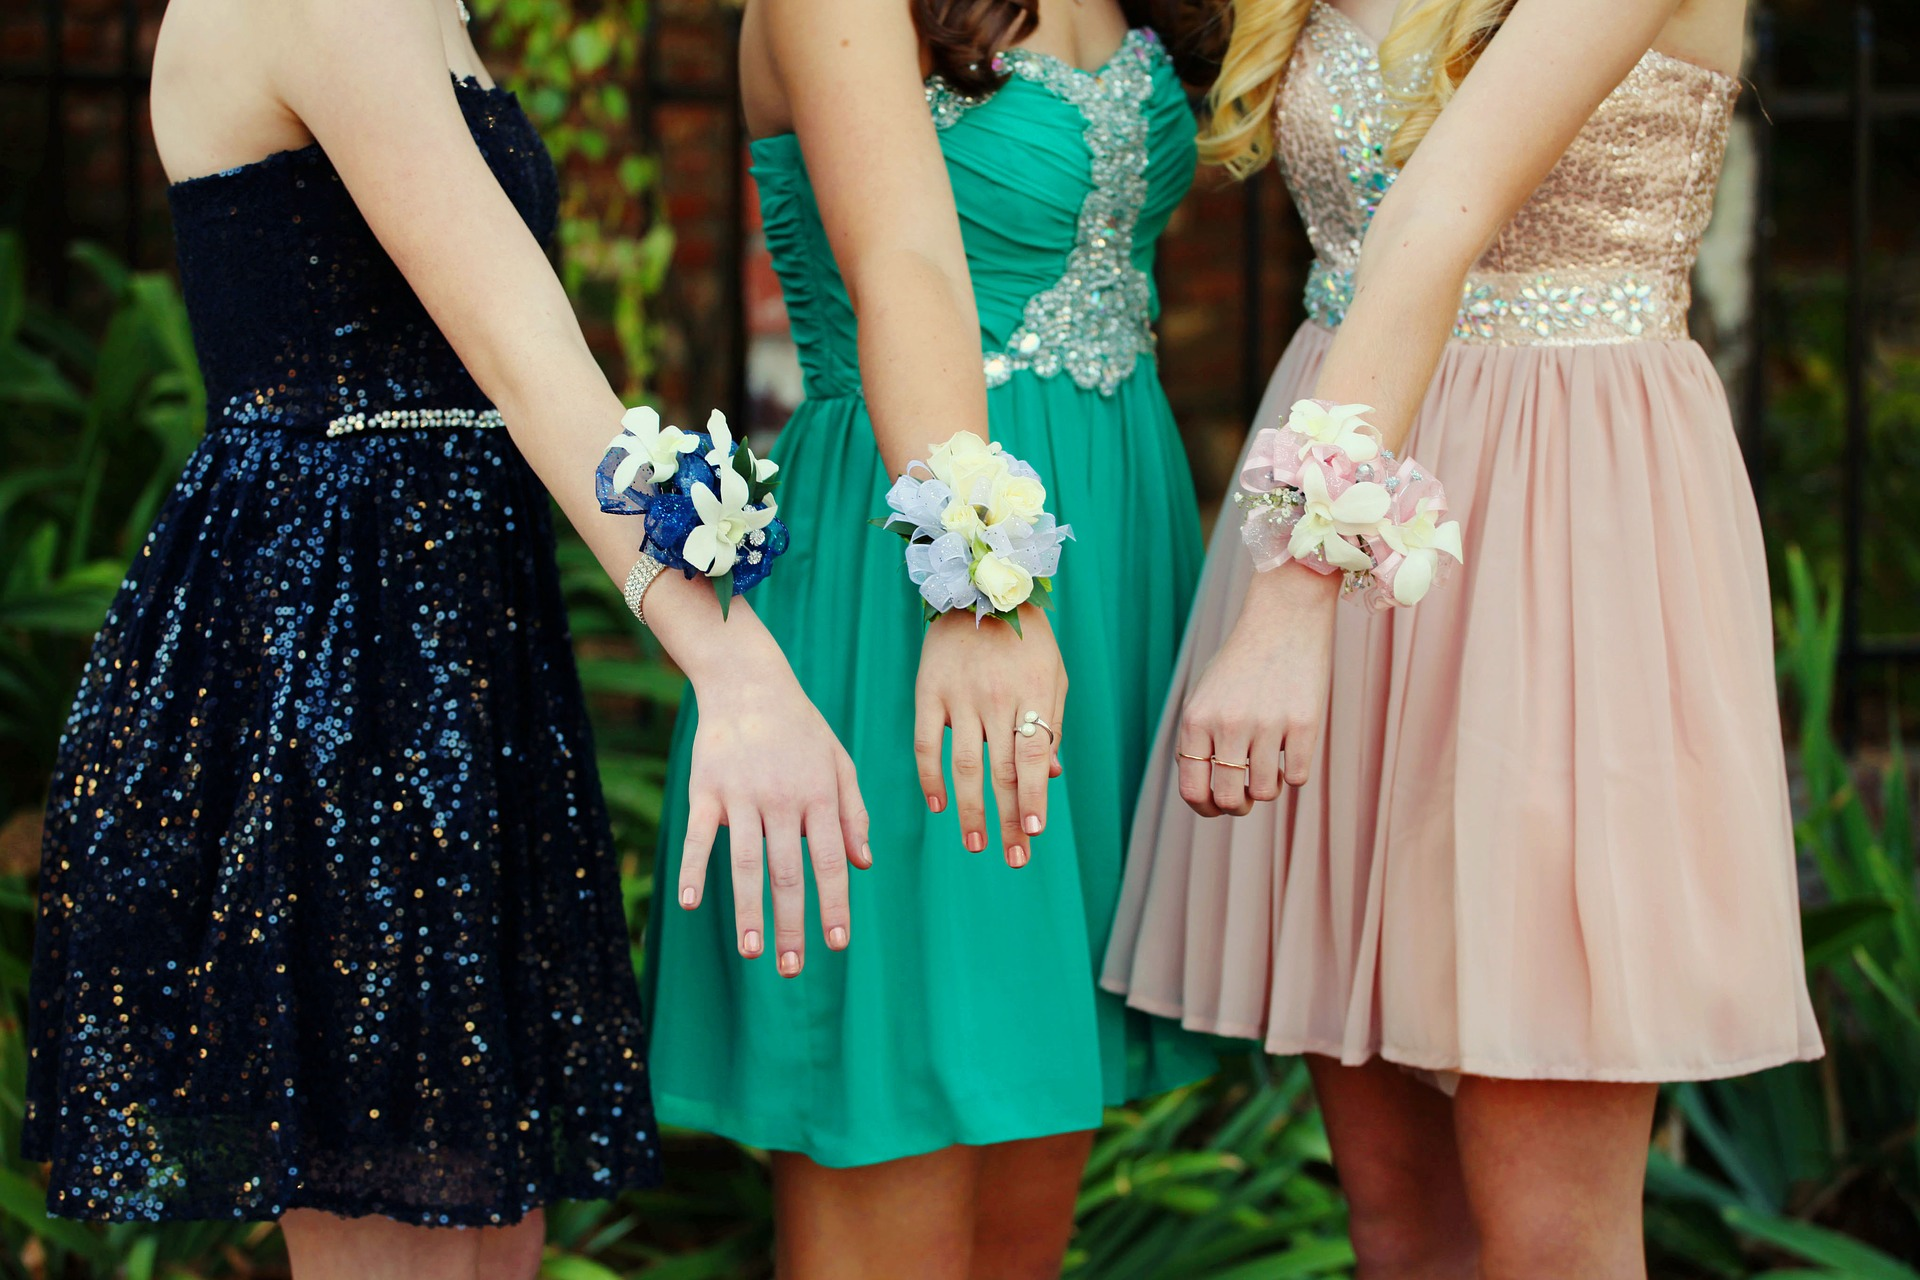 Prom Closet offers free formal dresses, shoes and accessories to ...